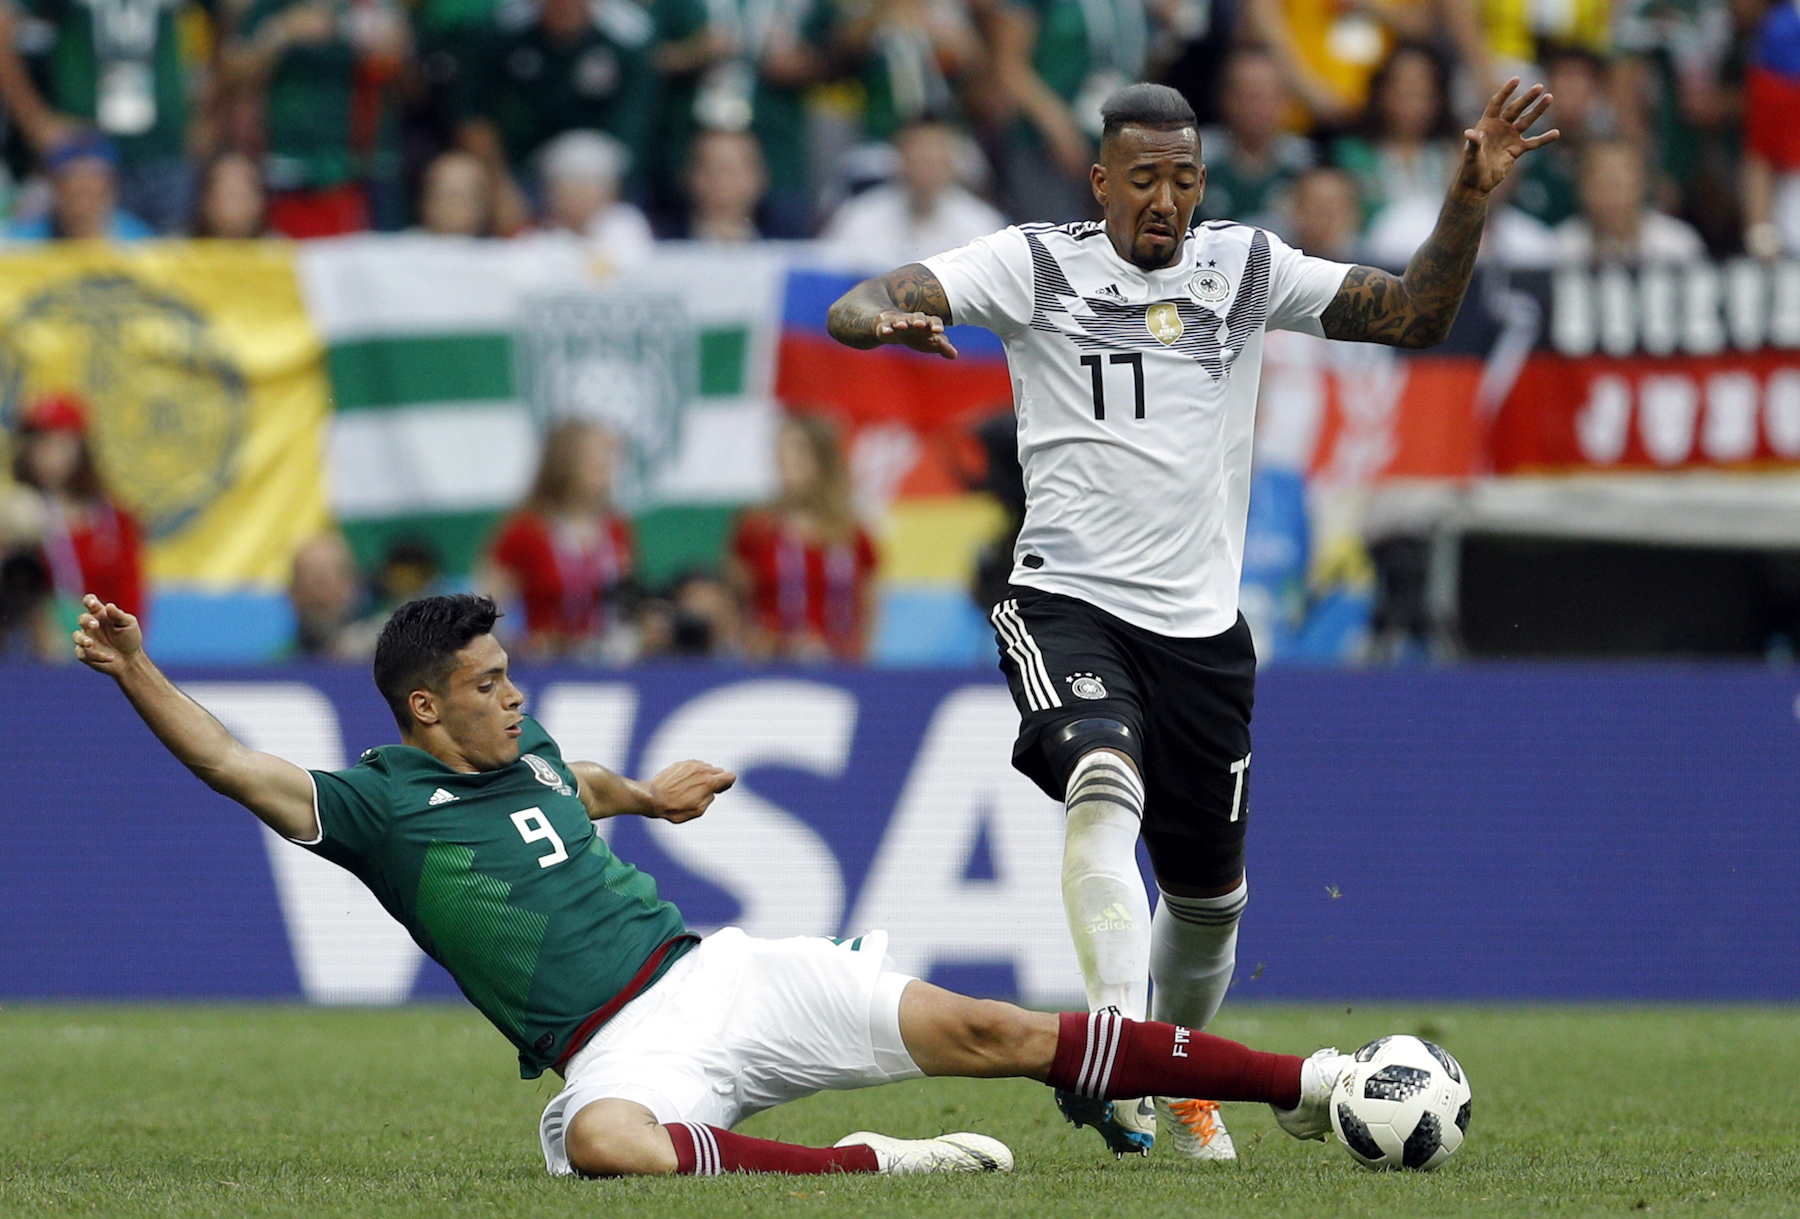 "<div class=""meta image-caption""><div class=""origin-logo origin-image ap""><span>AP</span></div><span class=""caption-text"">Mexico's Raul Jimenez, left, tackles Germany's Jerome Boateng during the group F match between Germany and Mexico at the 2018 soccer World Cup in the Luzhniki Stadium. (AP Photo/Victor R. Caivano)</span></div>"